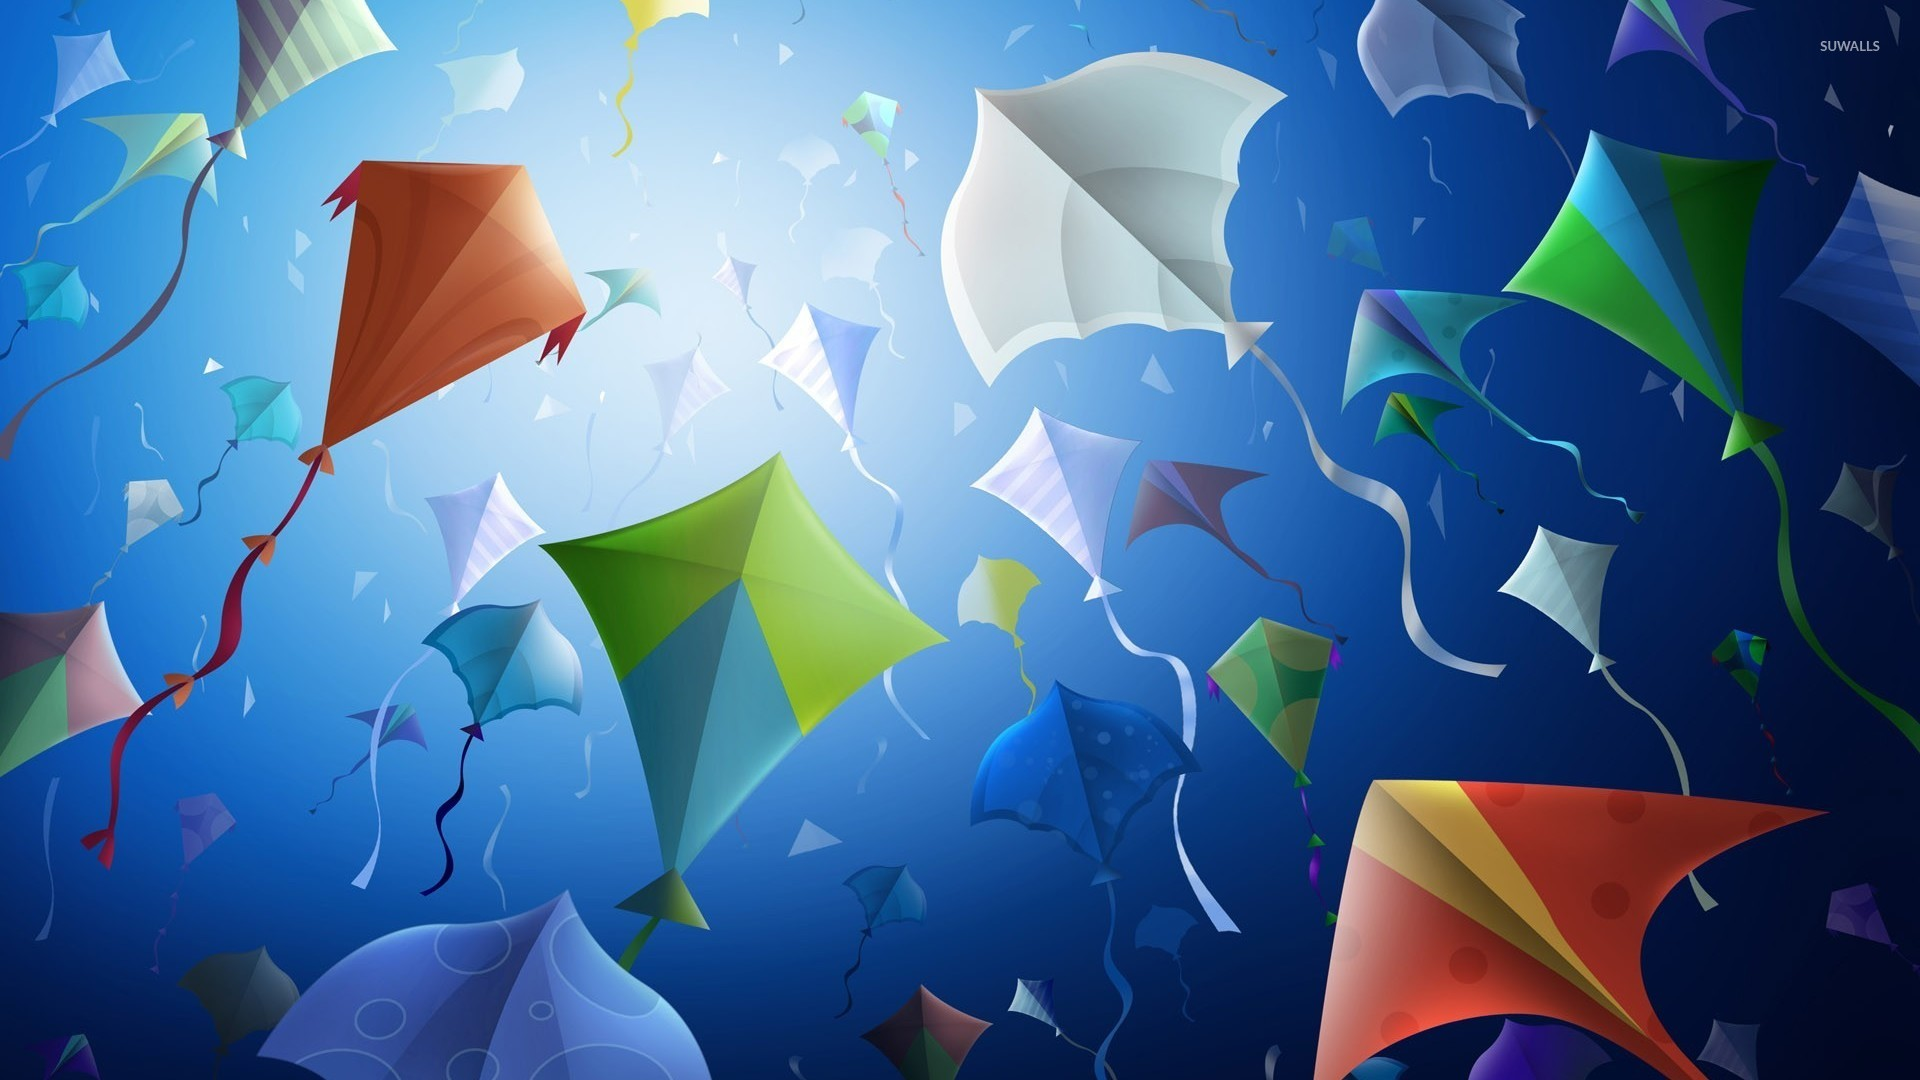 Kites wallpaper   Vector wallpapers   11526 1920x1080